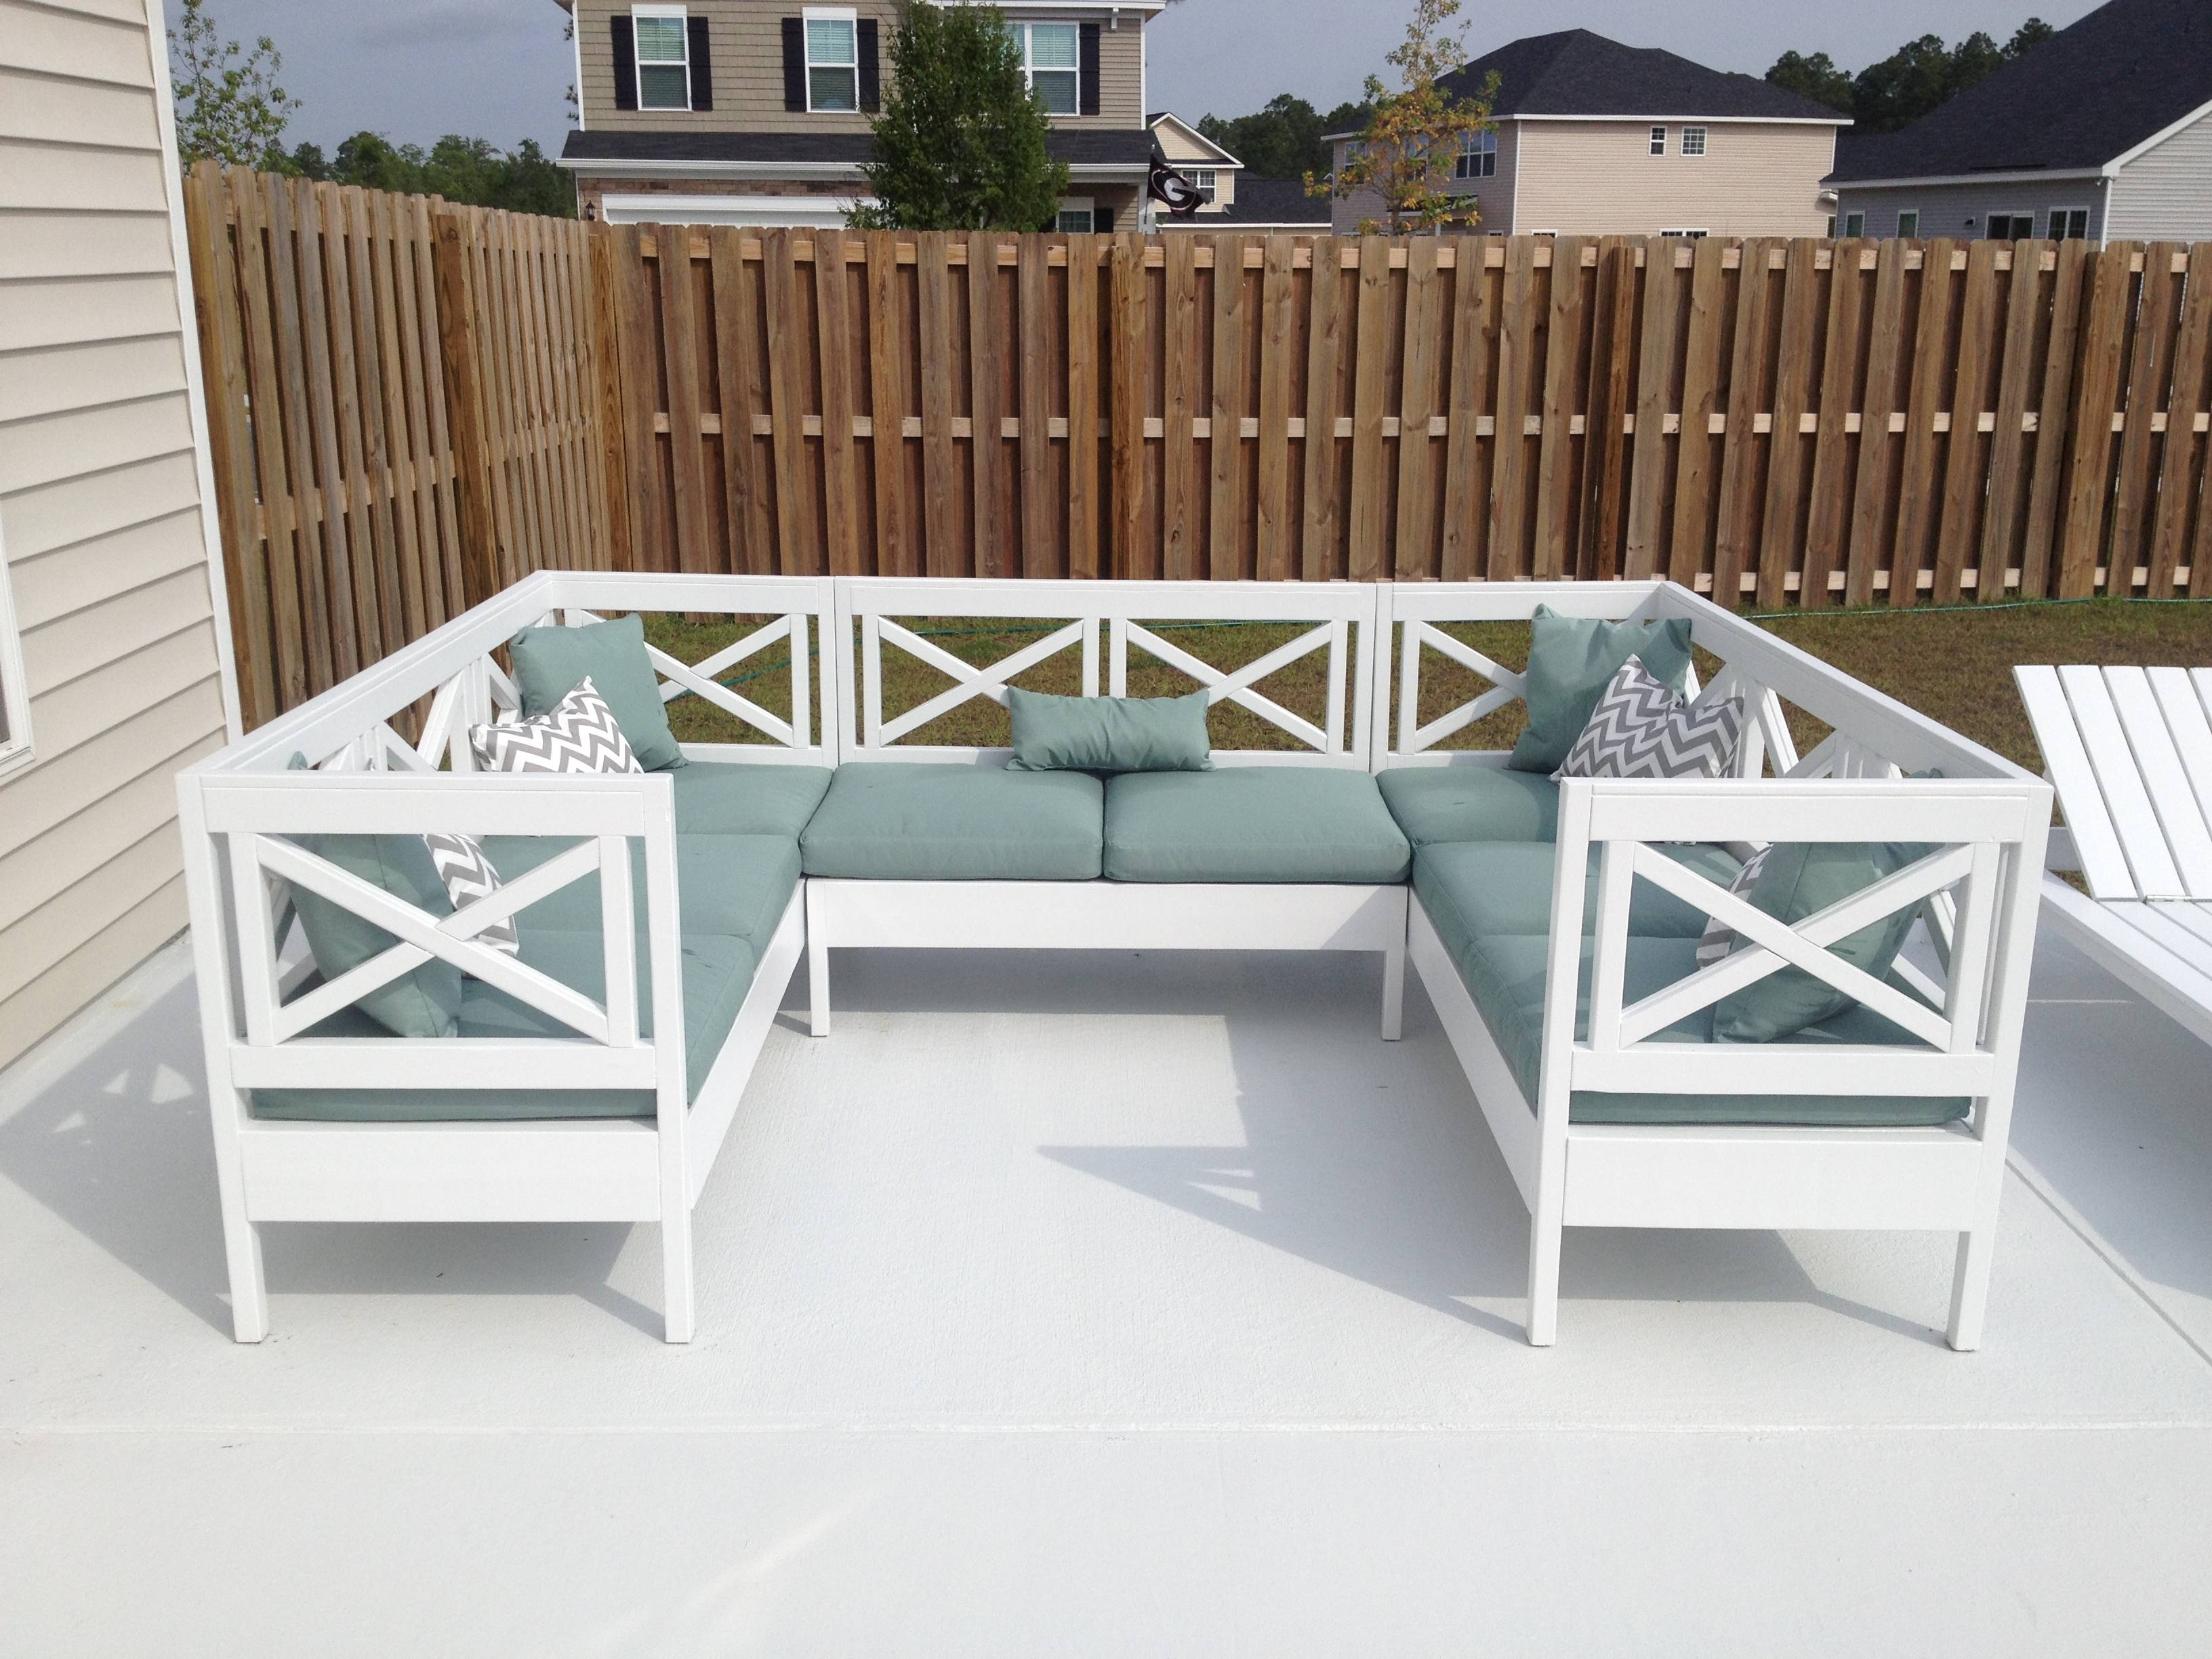 Ana White | Weatherly Outdoor Sectional! - Diy Projects pertaining to Ana White Outdoor Sofas (Image 12 of 15)